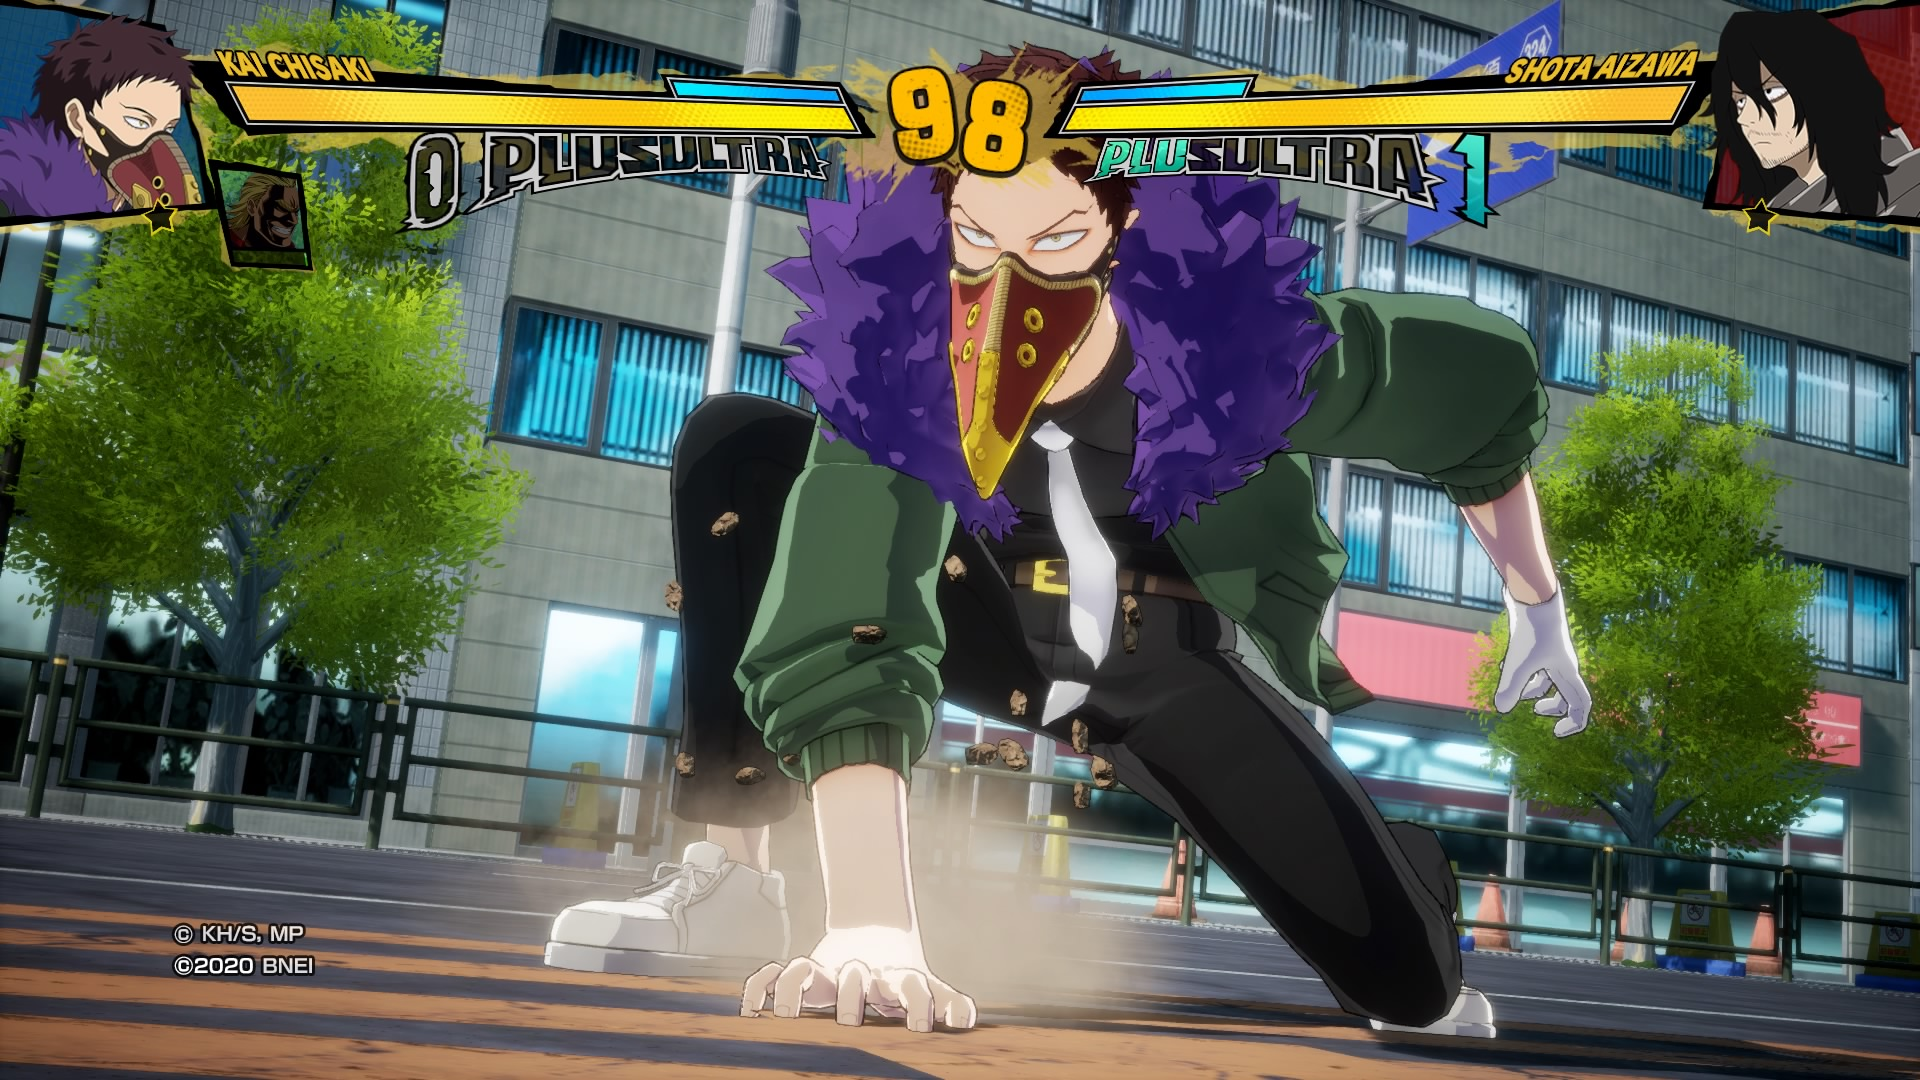 My Hero One s Justice 2 Recensione My Hero One s Justice 2 Bandai Namco My Hero One's Justice 2 PS4